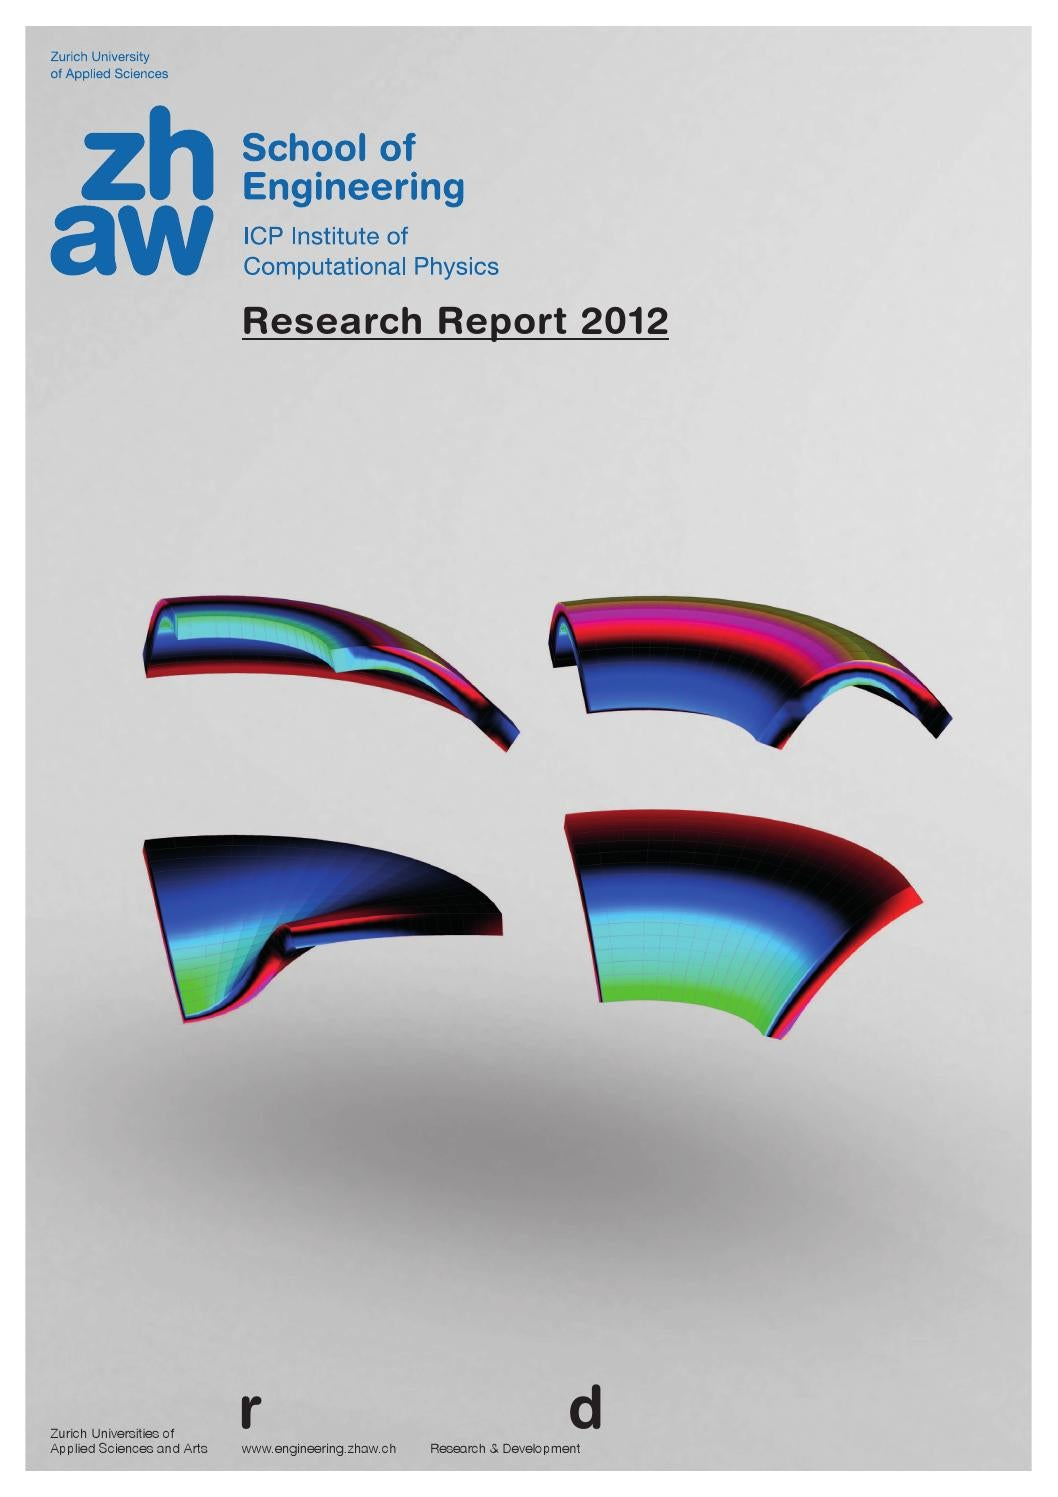 Zhaw Icp Research Report 2012 By School Of Engineering Issuu Details About Elenco Snap Circuits Part 6schc Hand Crank